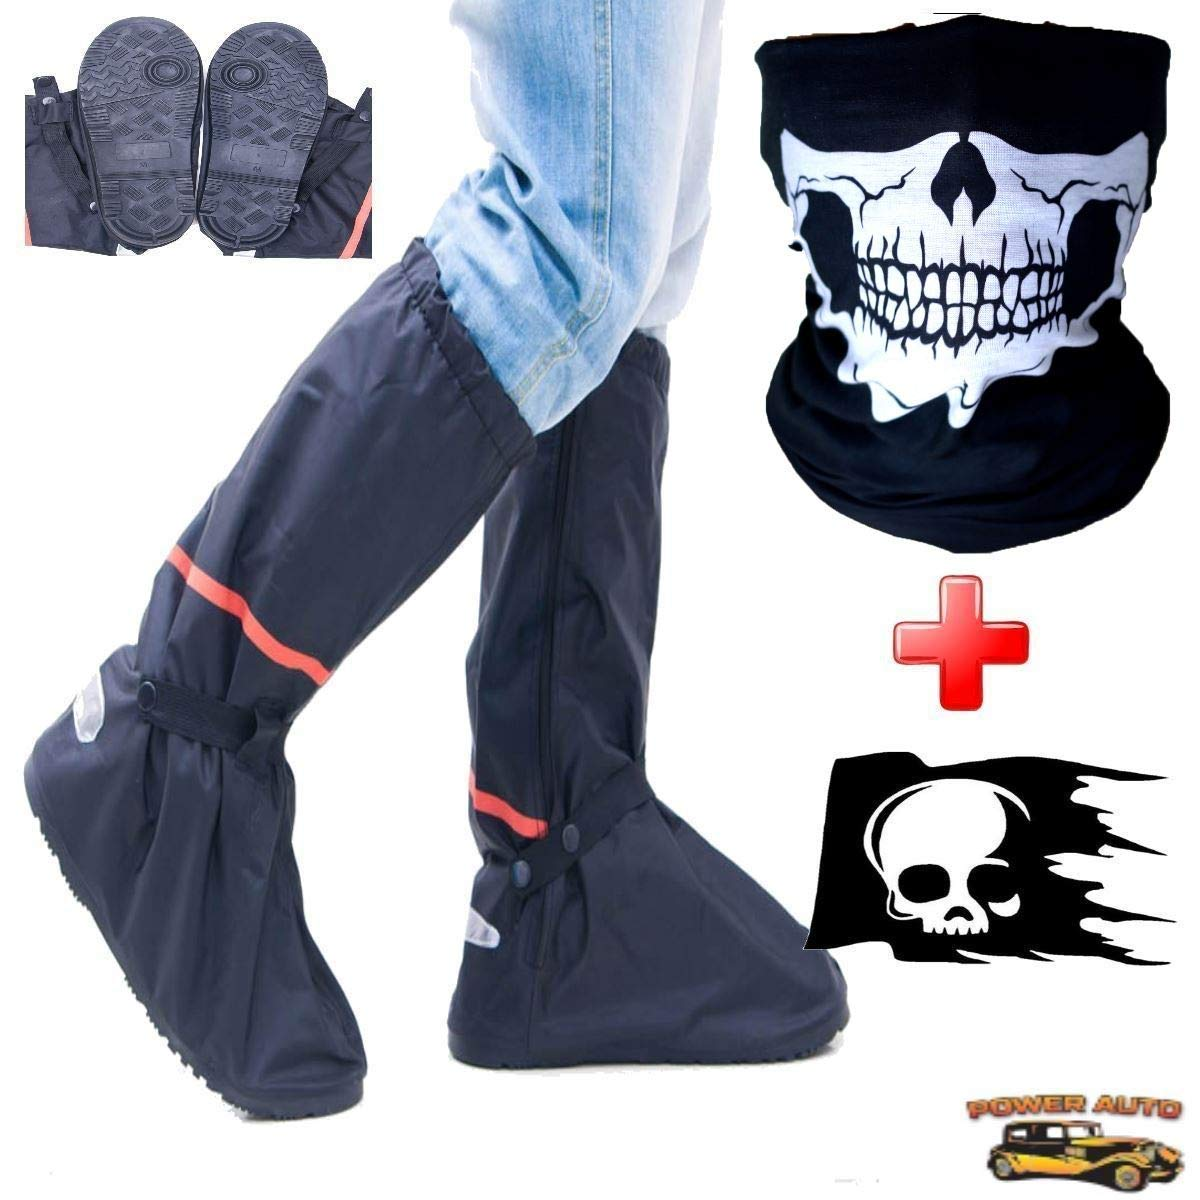 Outdoor Protective Riding Rain Suit Gear Waterproof Weatherproof Full Shoe Slip Over Motorcycle Boot Covers Rainstorm Rainy Days Plus Skull Decal /& Skeleton Riding Face Mask M